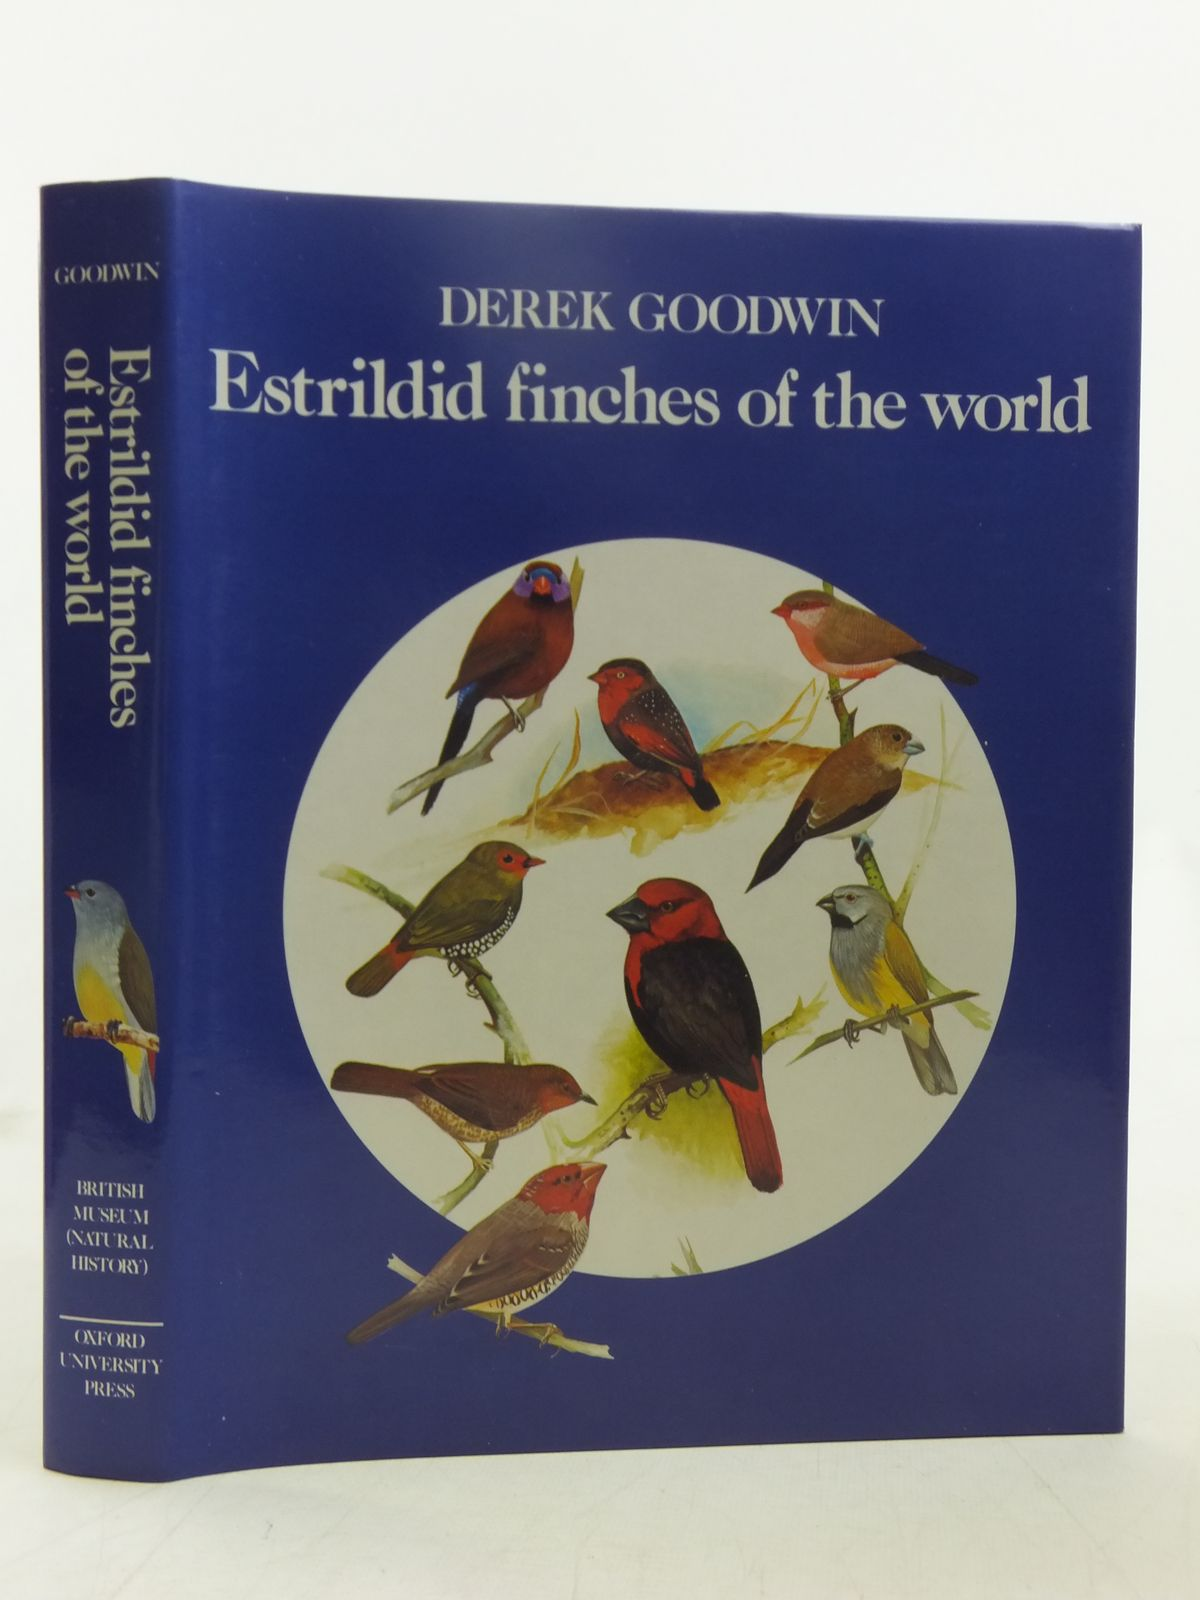 Photo of ESTRILDID FINCHES OF THE WORLD written by Goodwin, Derek illustrated by Woodcock, Martin published by British Museum (Natural History), Oxford University Press (STOCK CODE: 1607506)  for sale by Stella & Rose's Books